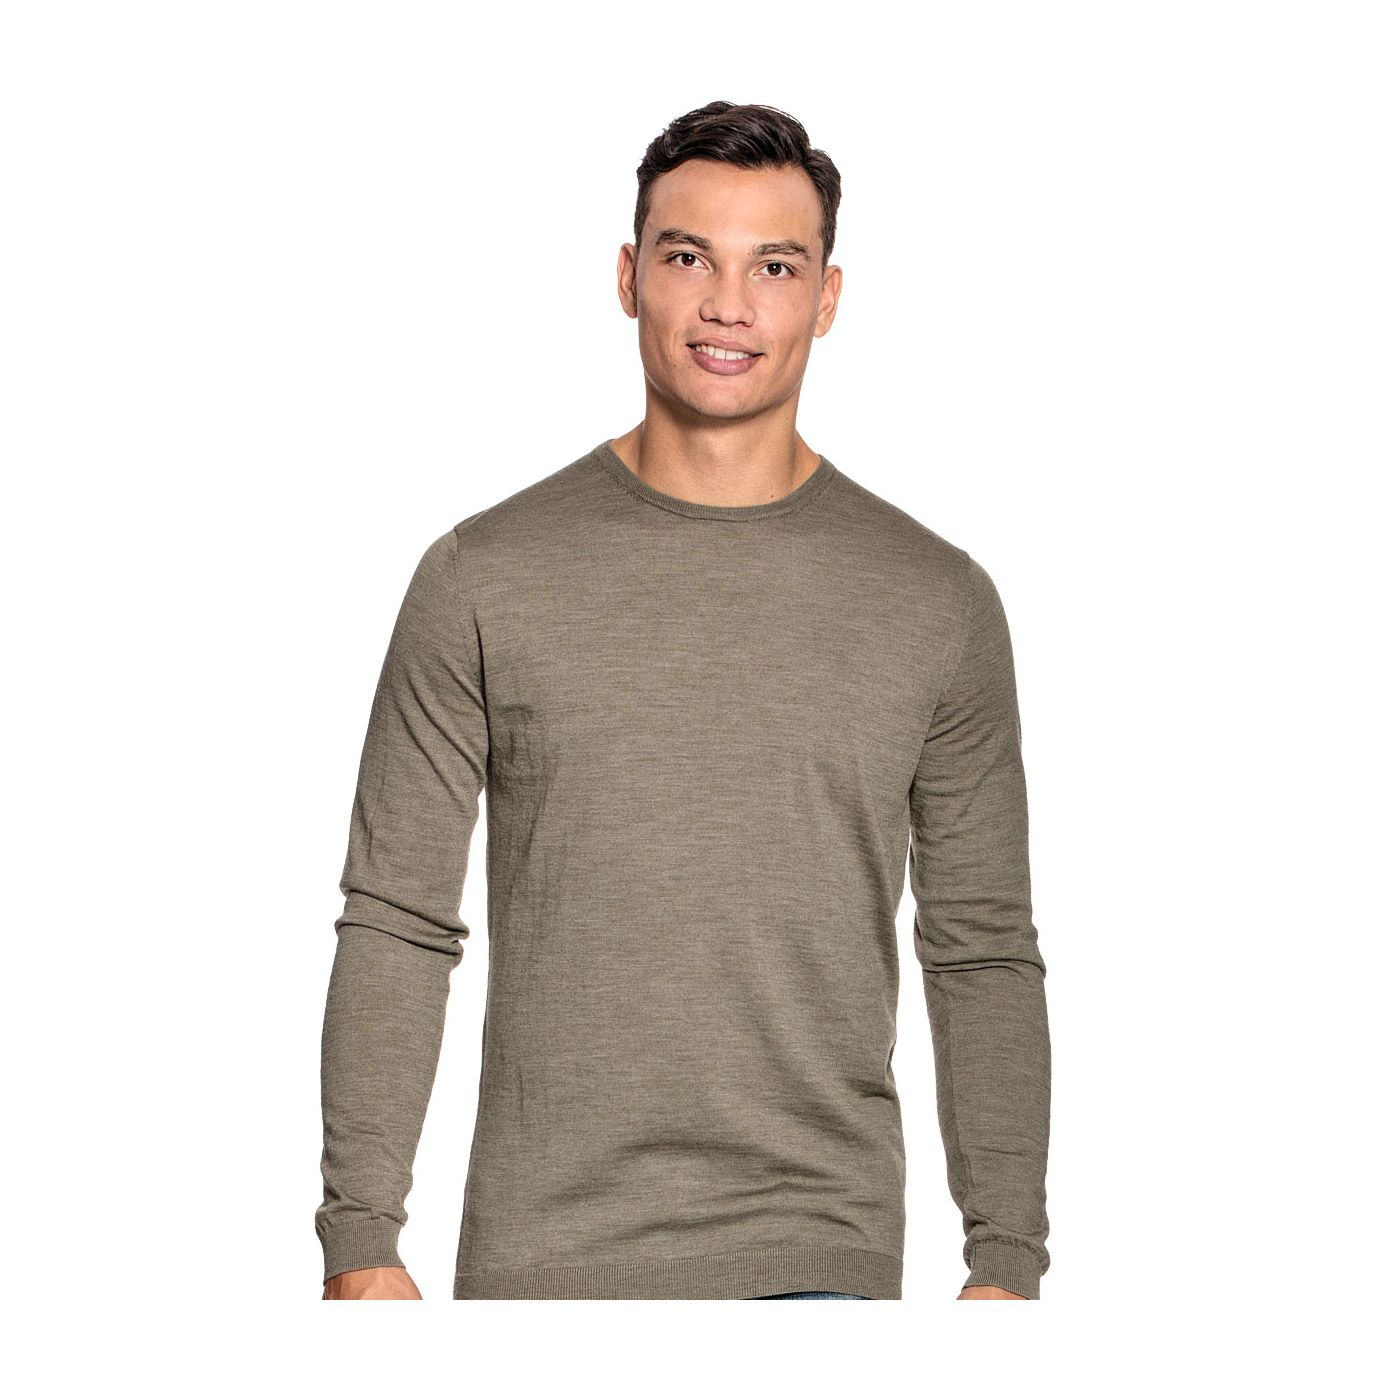 Extra long crew neck sweater for men made of Merino wool in Green